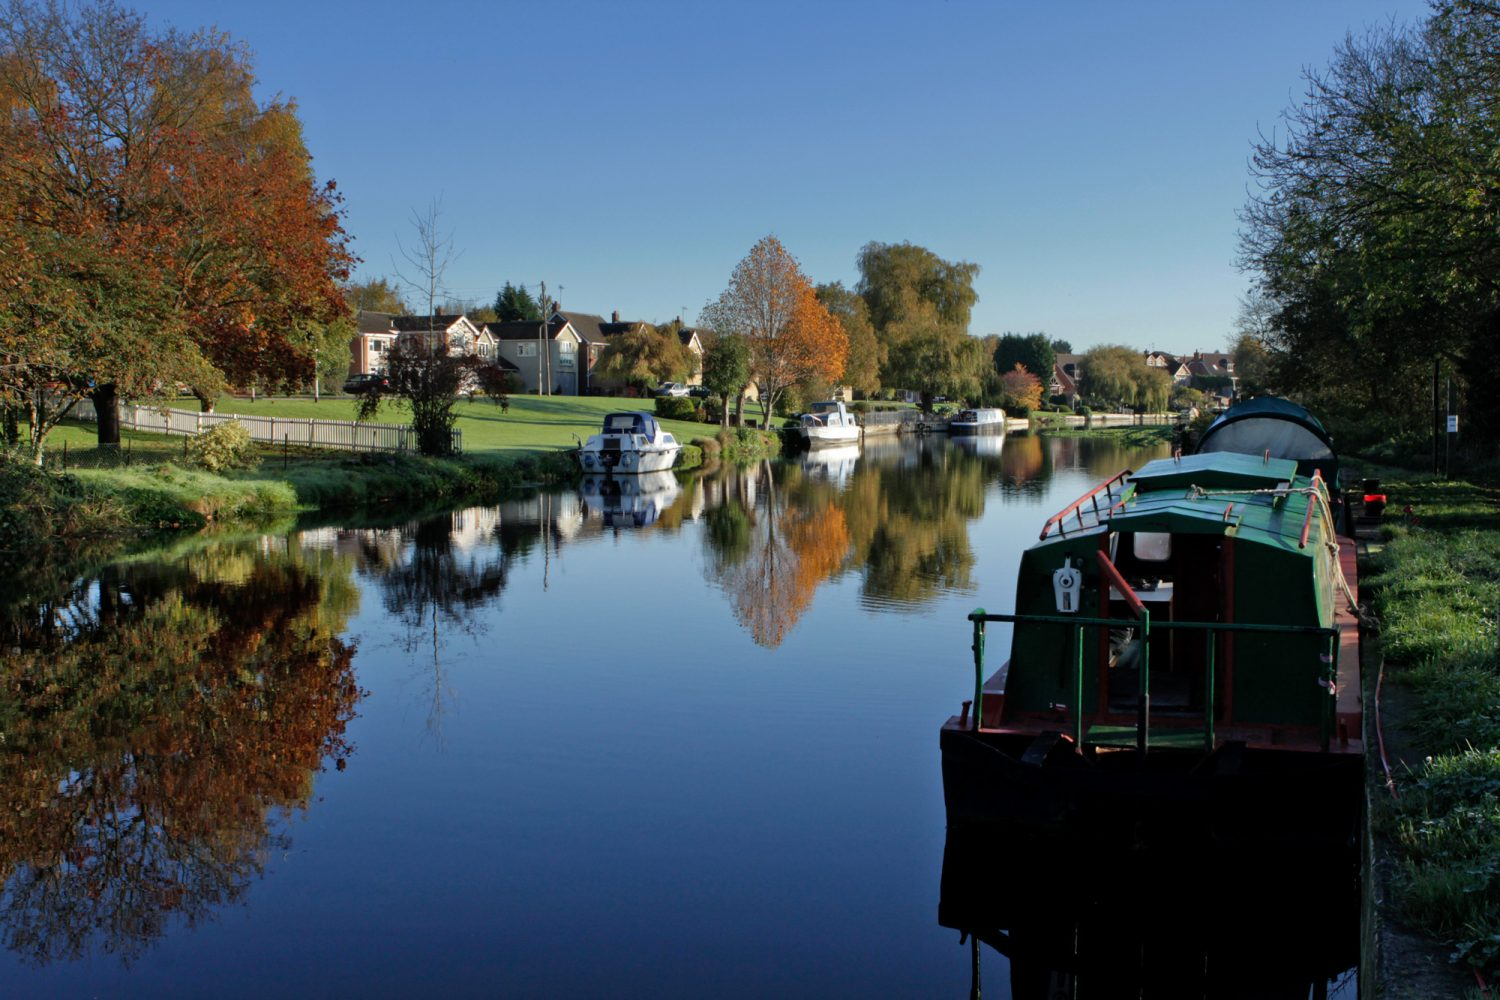 barrow-upon-soar river and canal